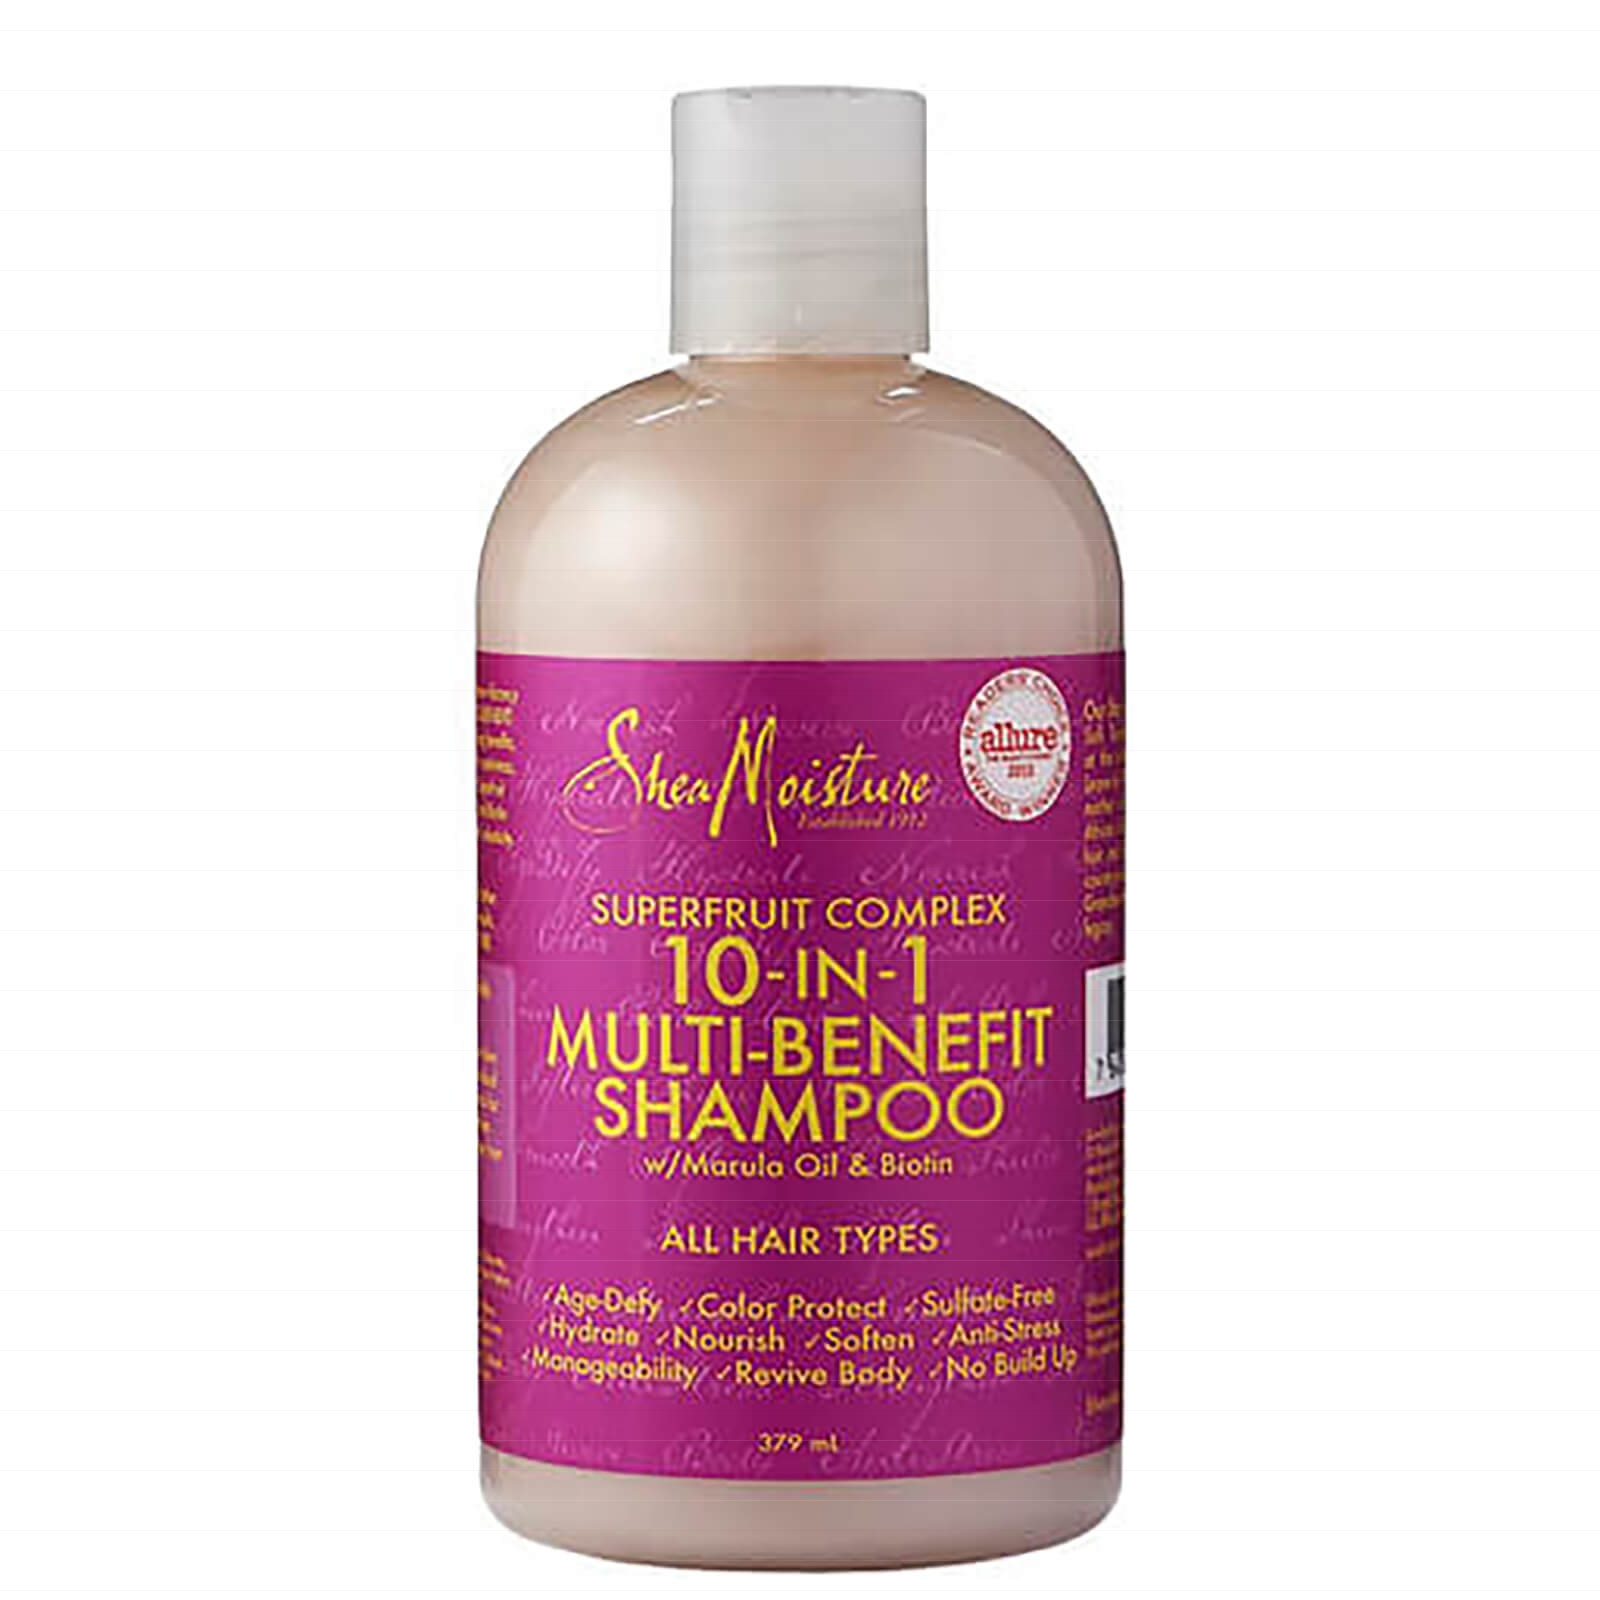 Shea Moisture Superfruit Complex 10 In 1 Renewal System Shampoo